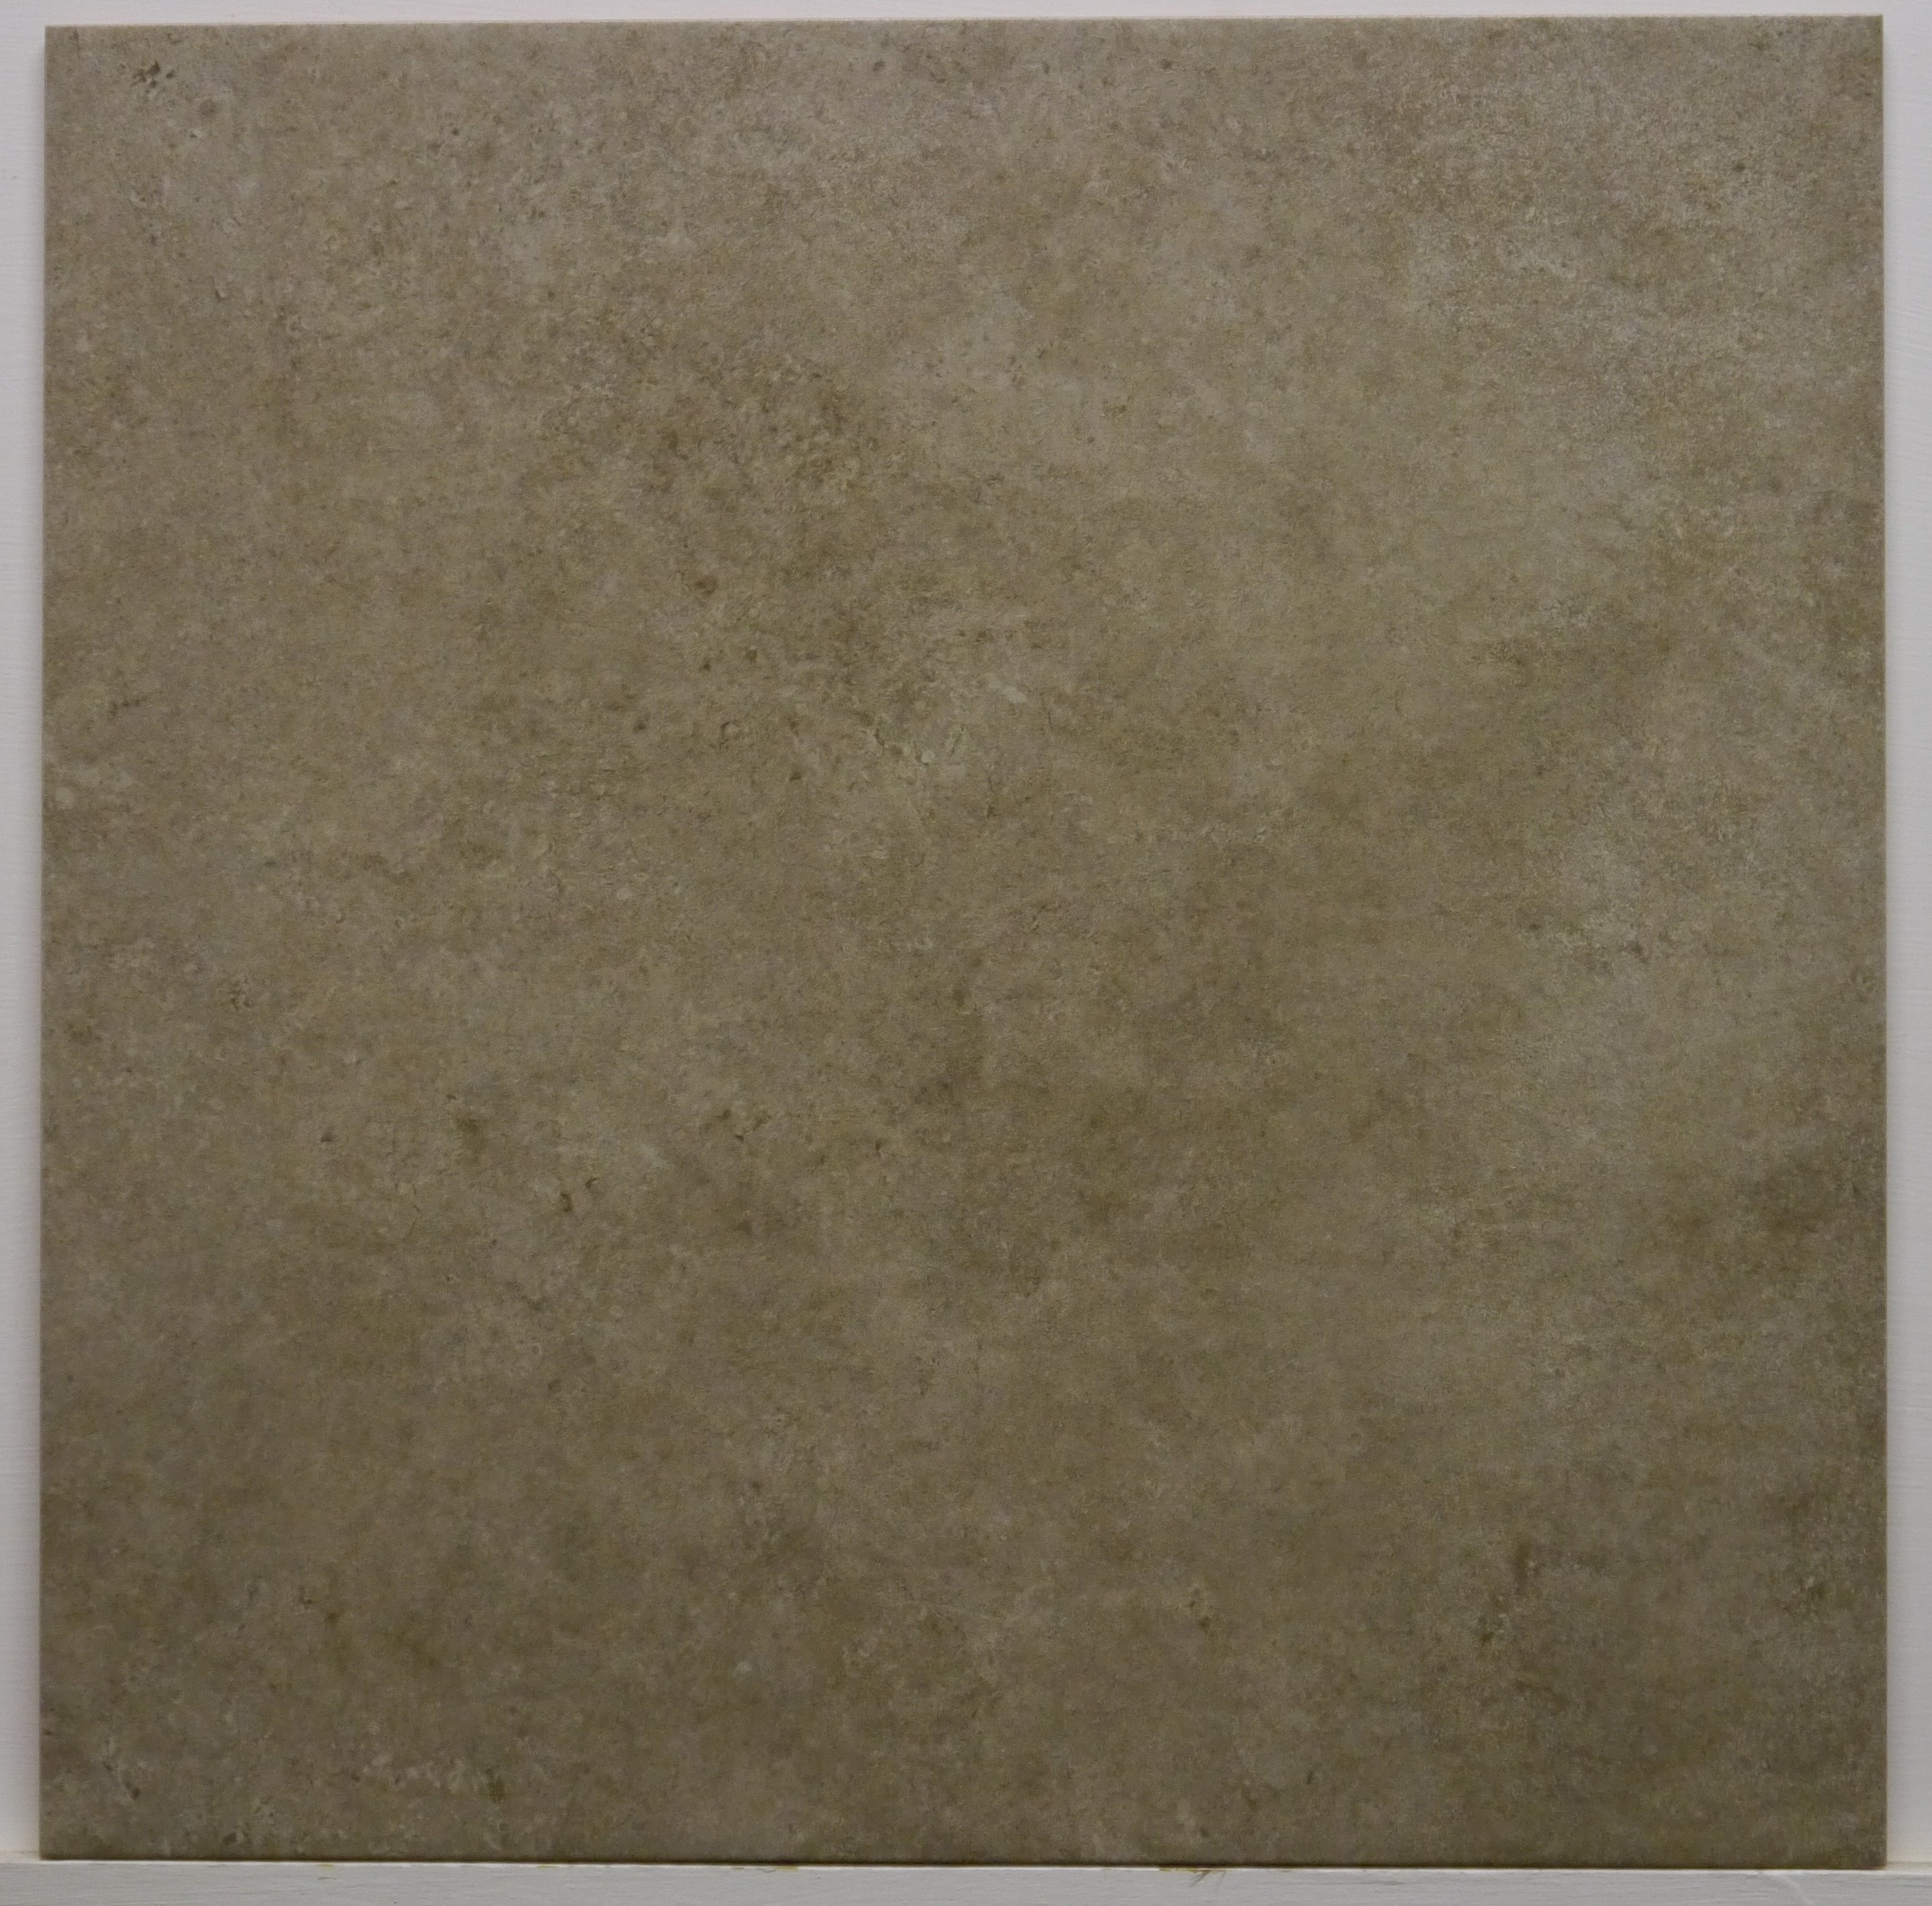 M9051 Ceramic Floor Tile 470 X 470 Dark Taupe The Tile